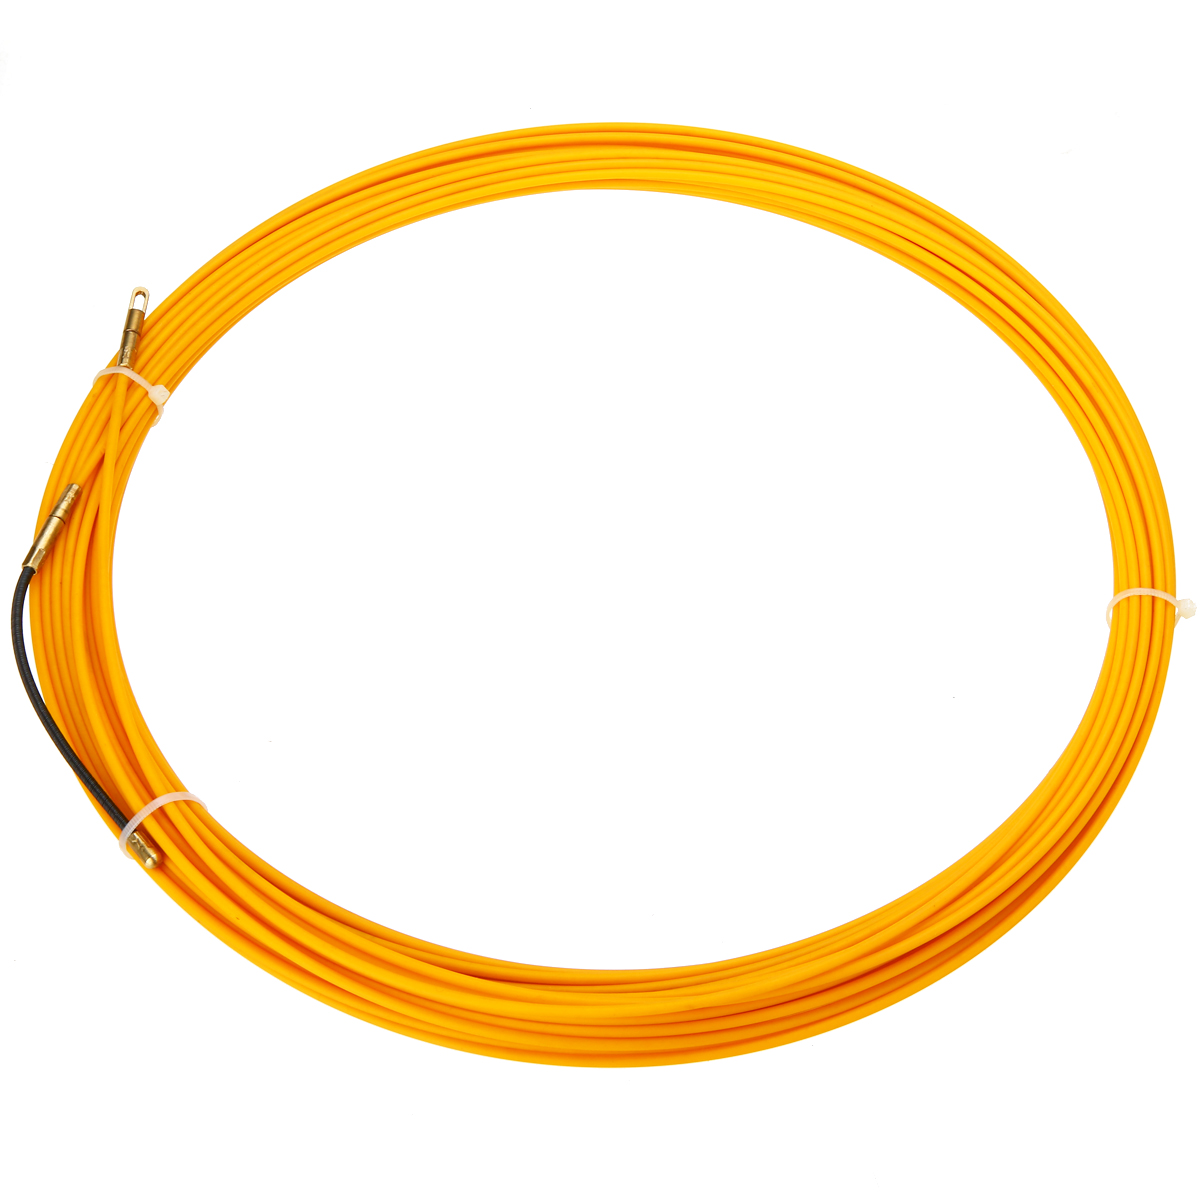 3mm 15m Cable Push Puller Conduit Snake Cable Fish Tape Wire Guide DIY Fiber Optic Cable Puller 10cm